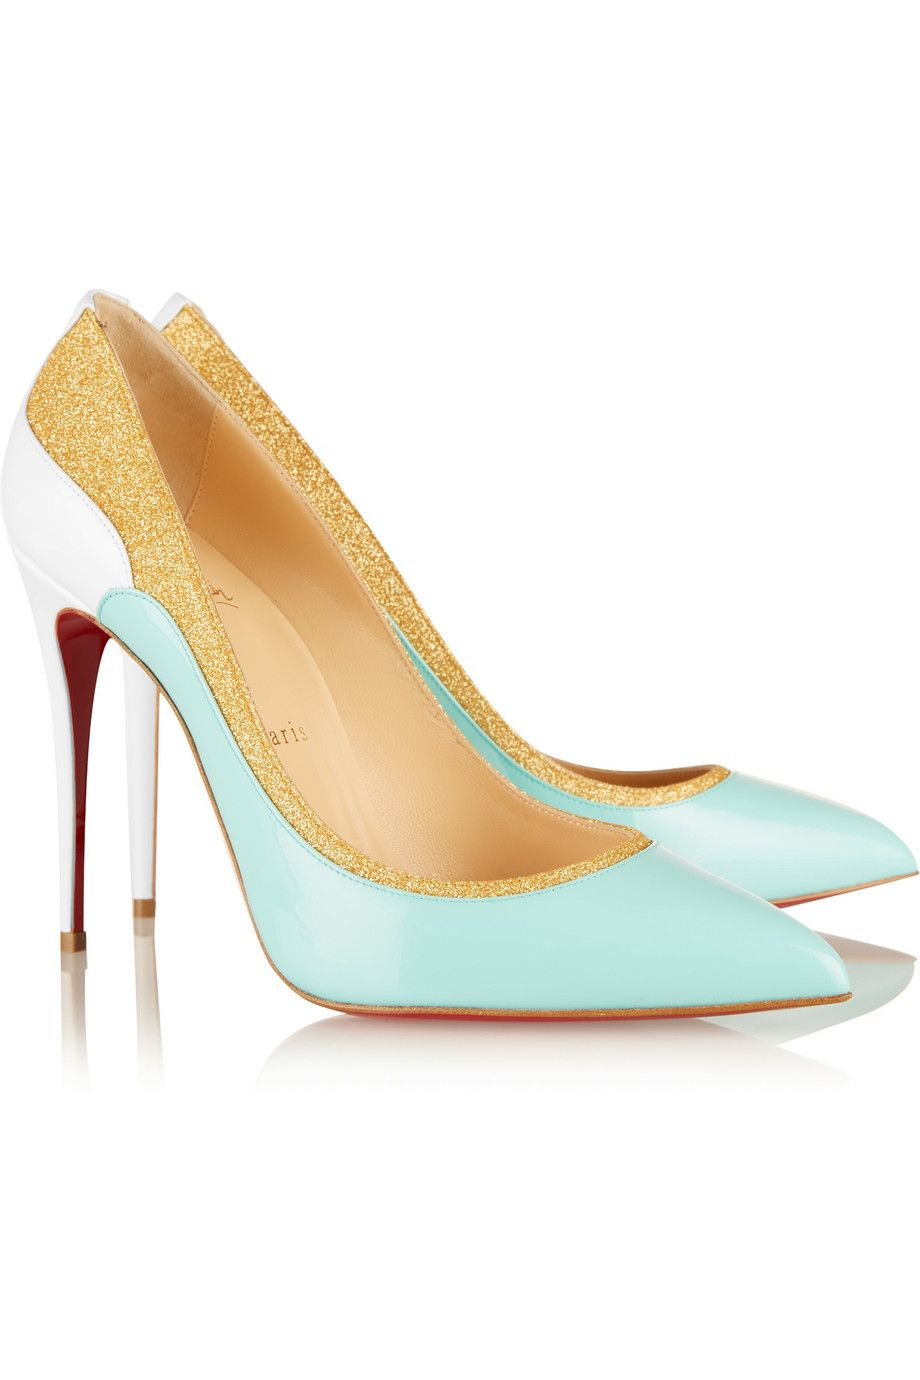 Pigalle Follies 100 Satin Pumps - Azure Christian Louboutin Clearance Explore Sale Best Store To Get Free Shipping Factory Outlet Clearance Fashionable Footlocker For Sale wxDR94bJ2